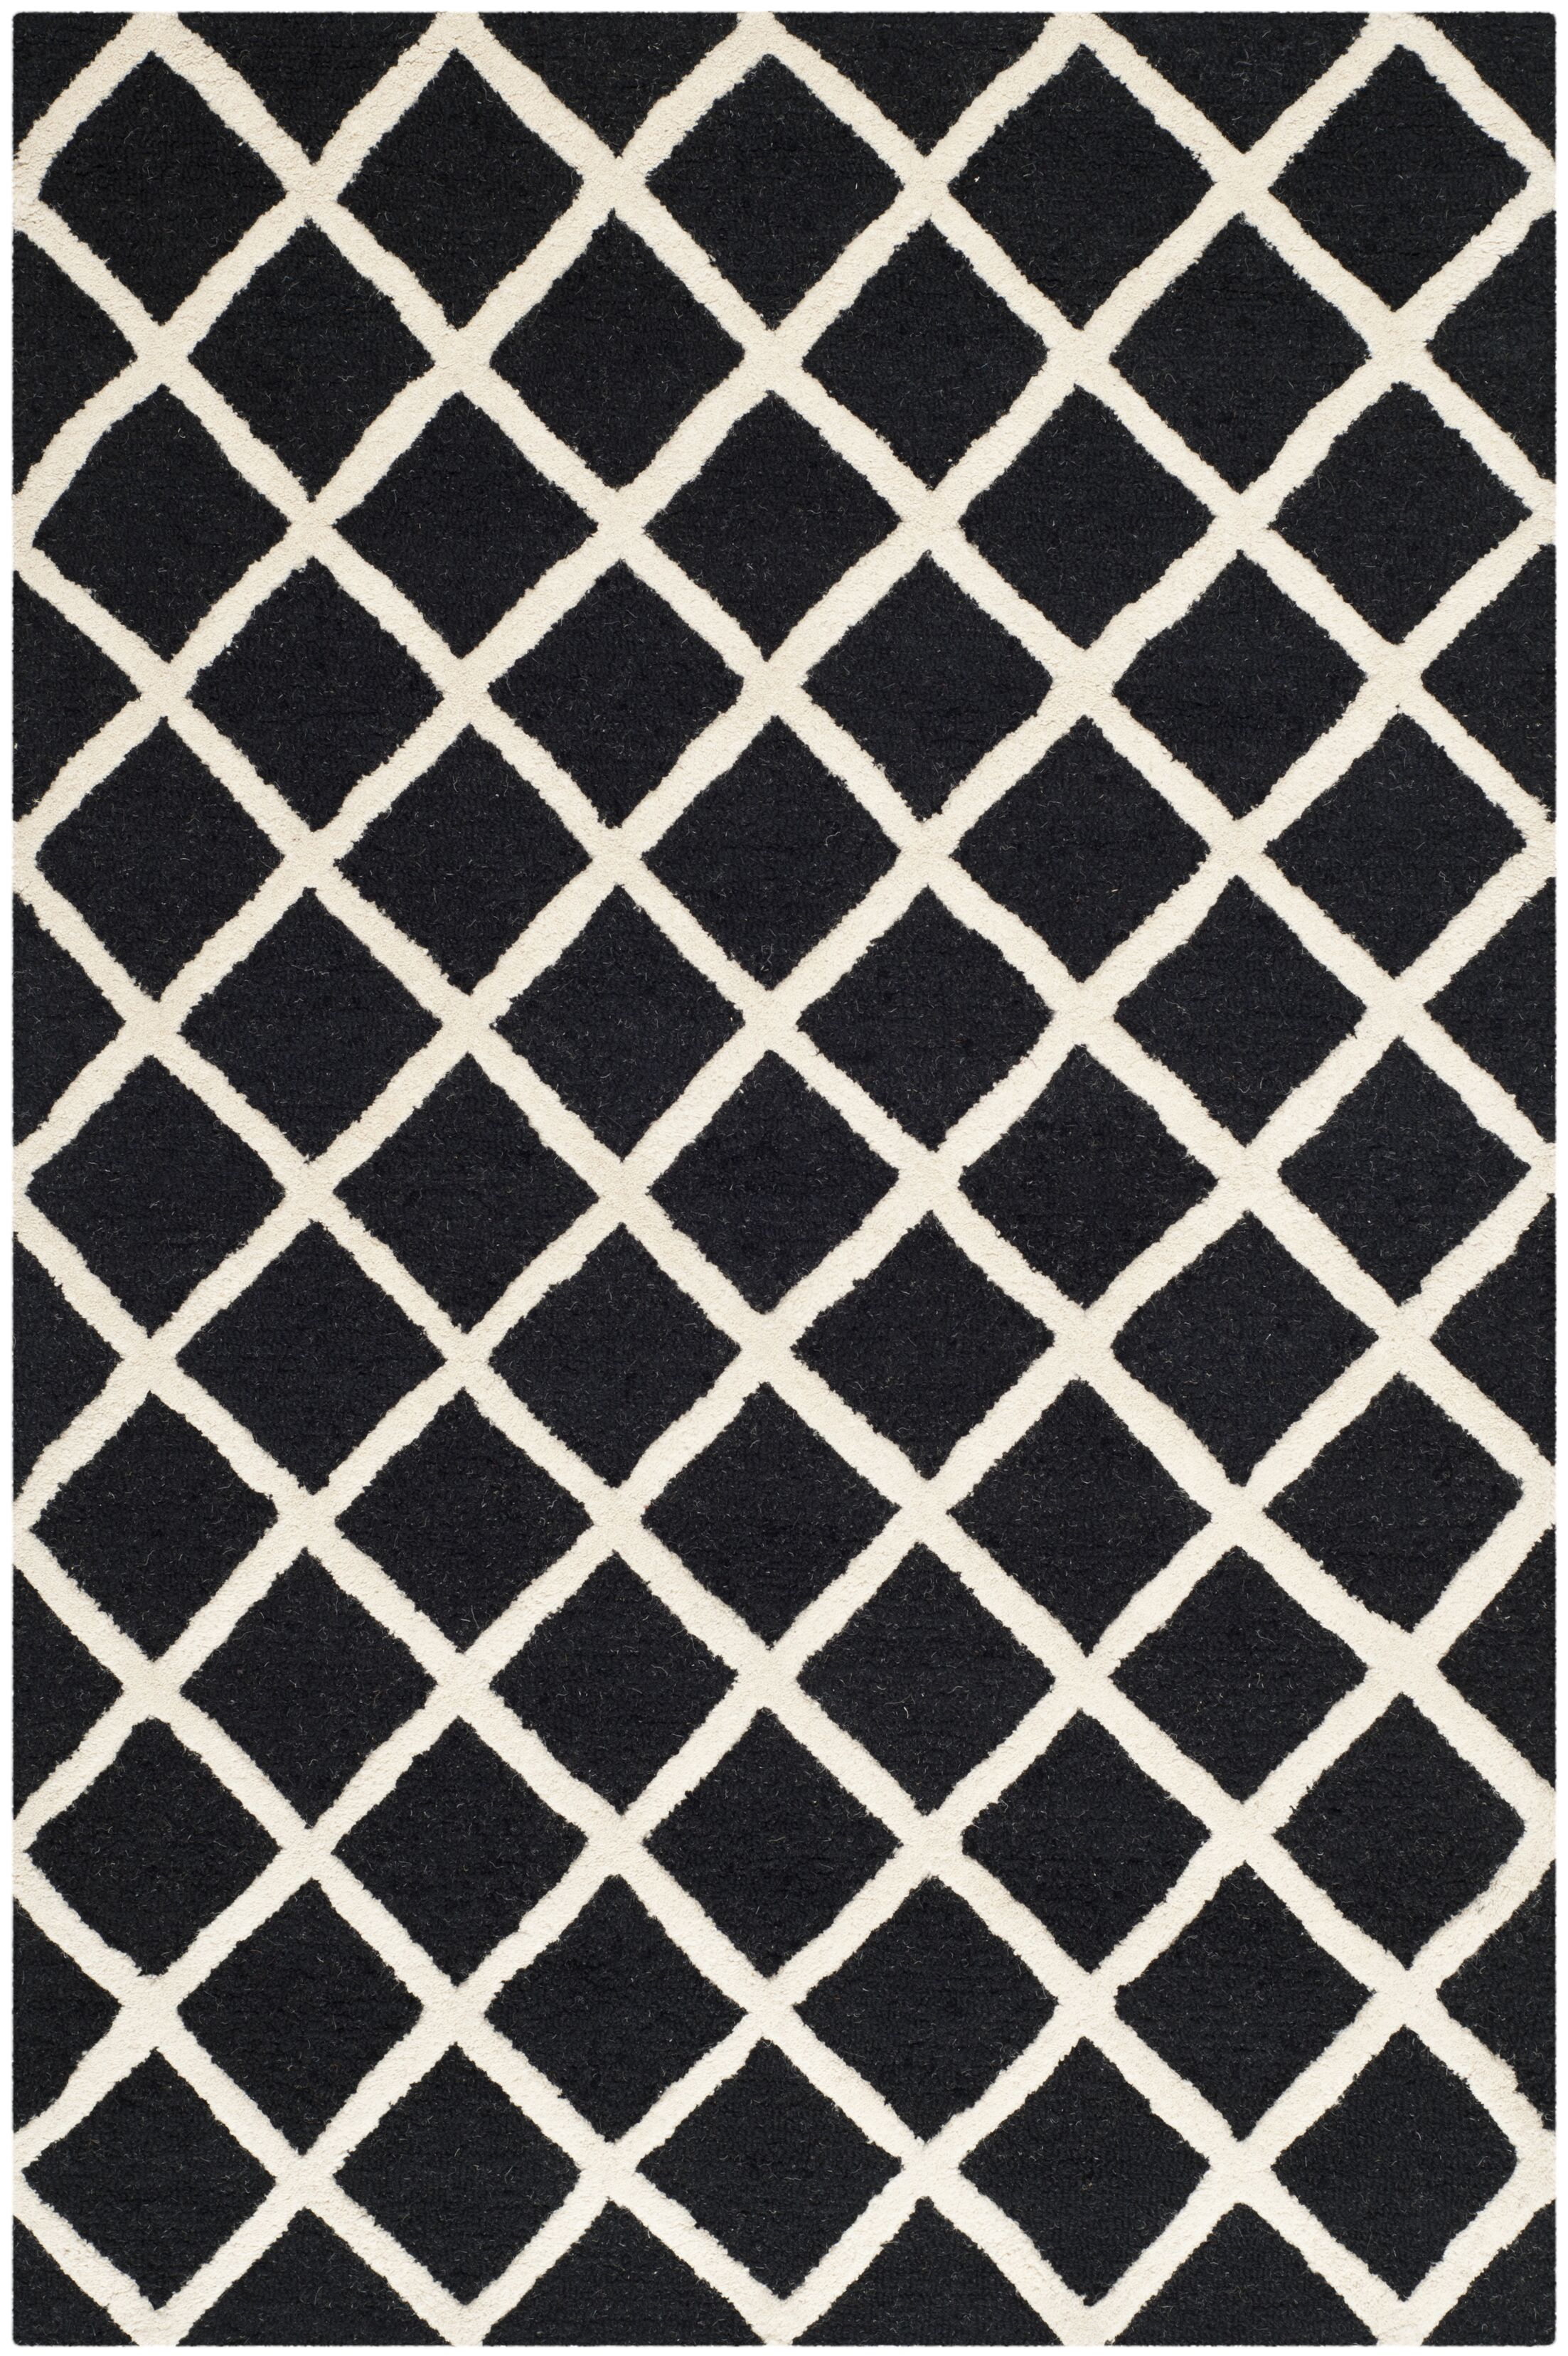 Darla Hand-Tufted Wool Black/White Area Rug Rug Size: Rectangle 4' x 6'